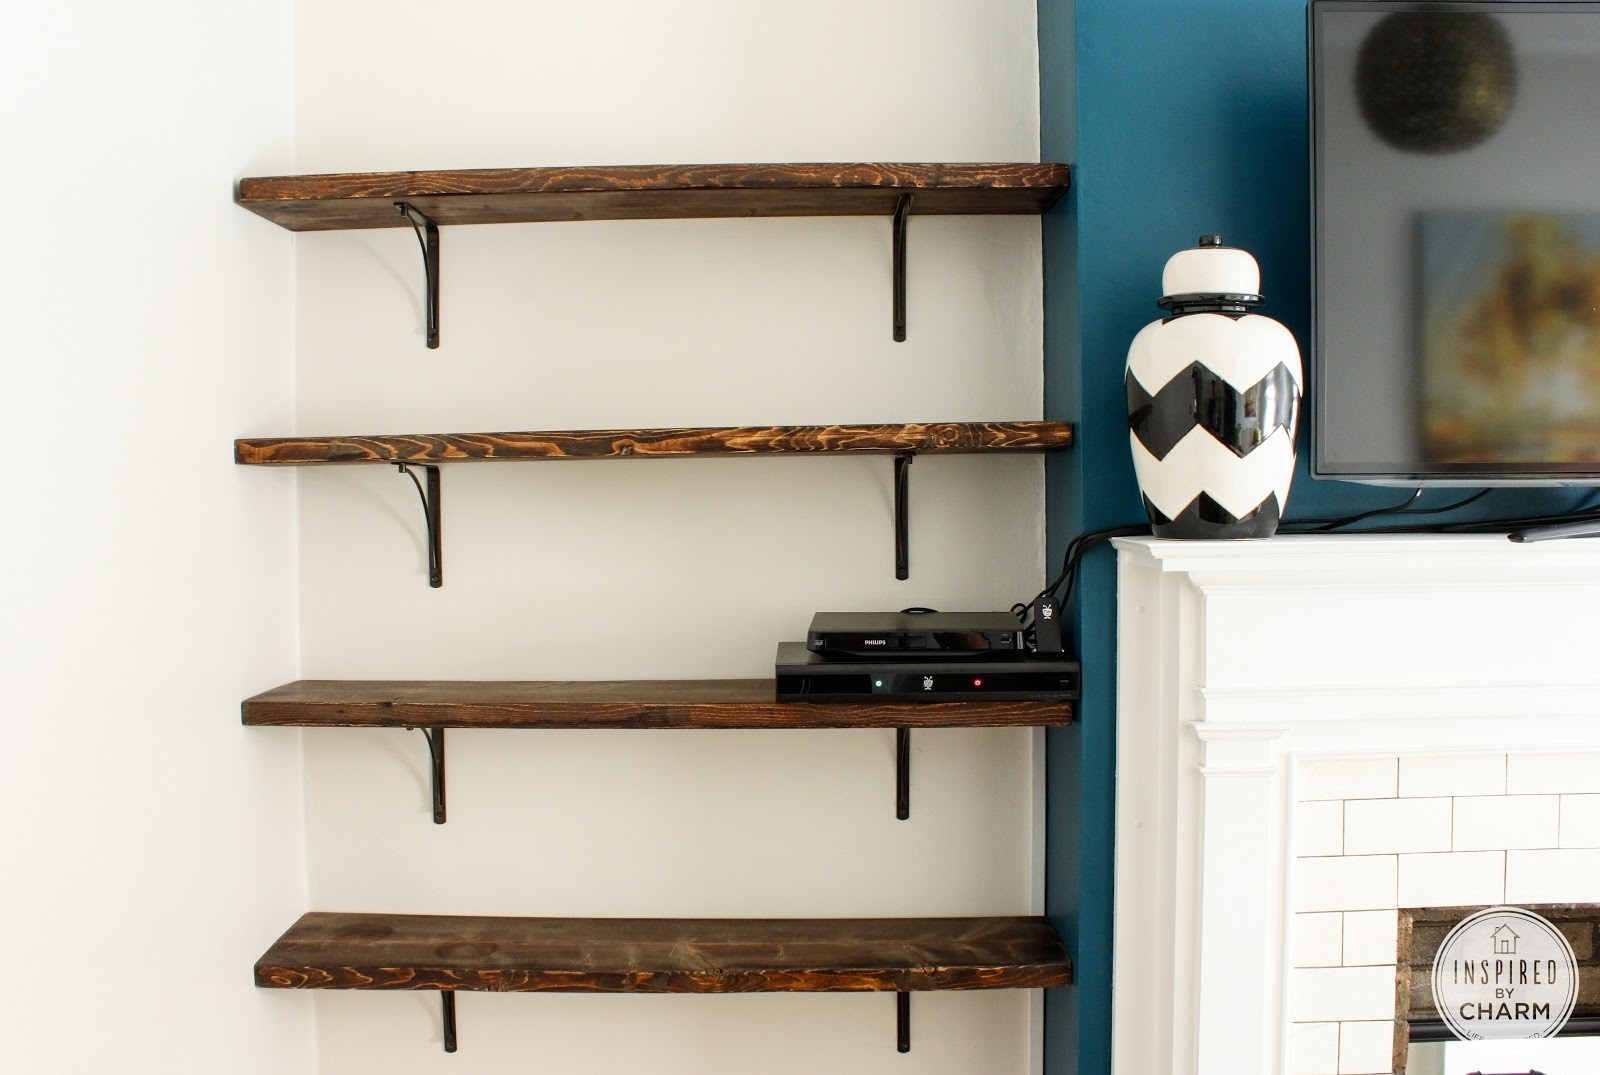 Wall mounted shelves for books